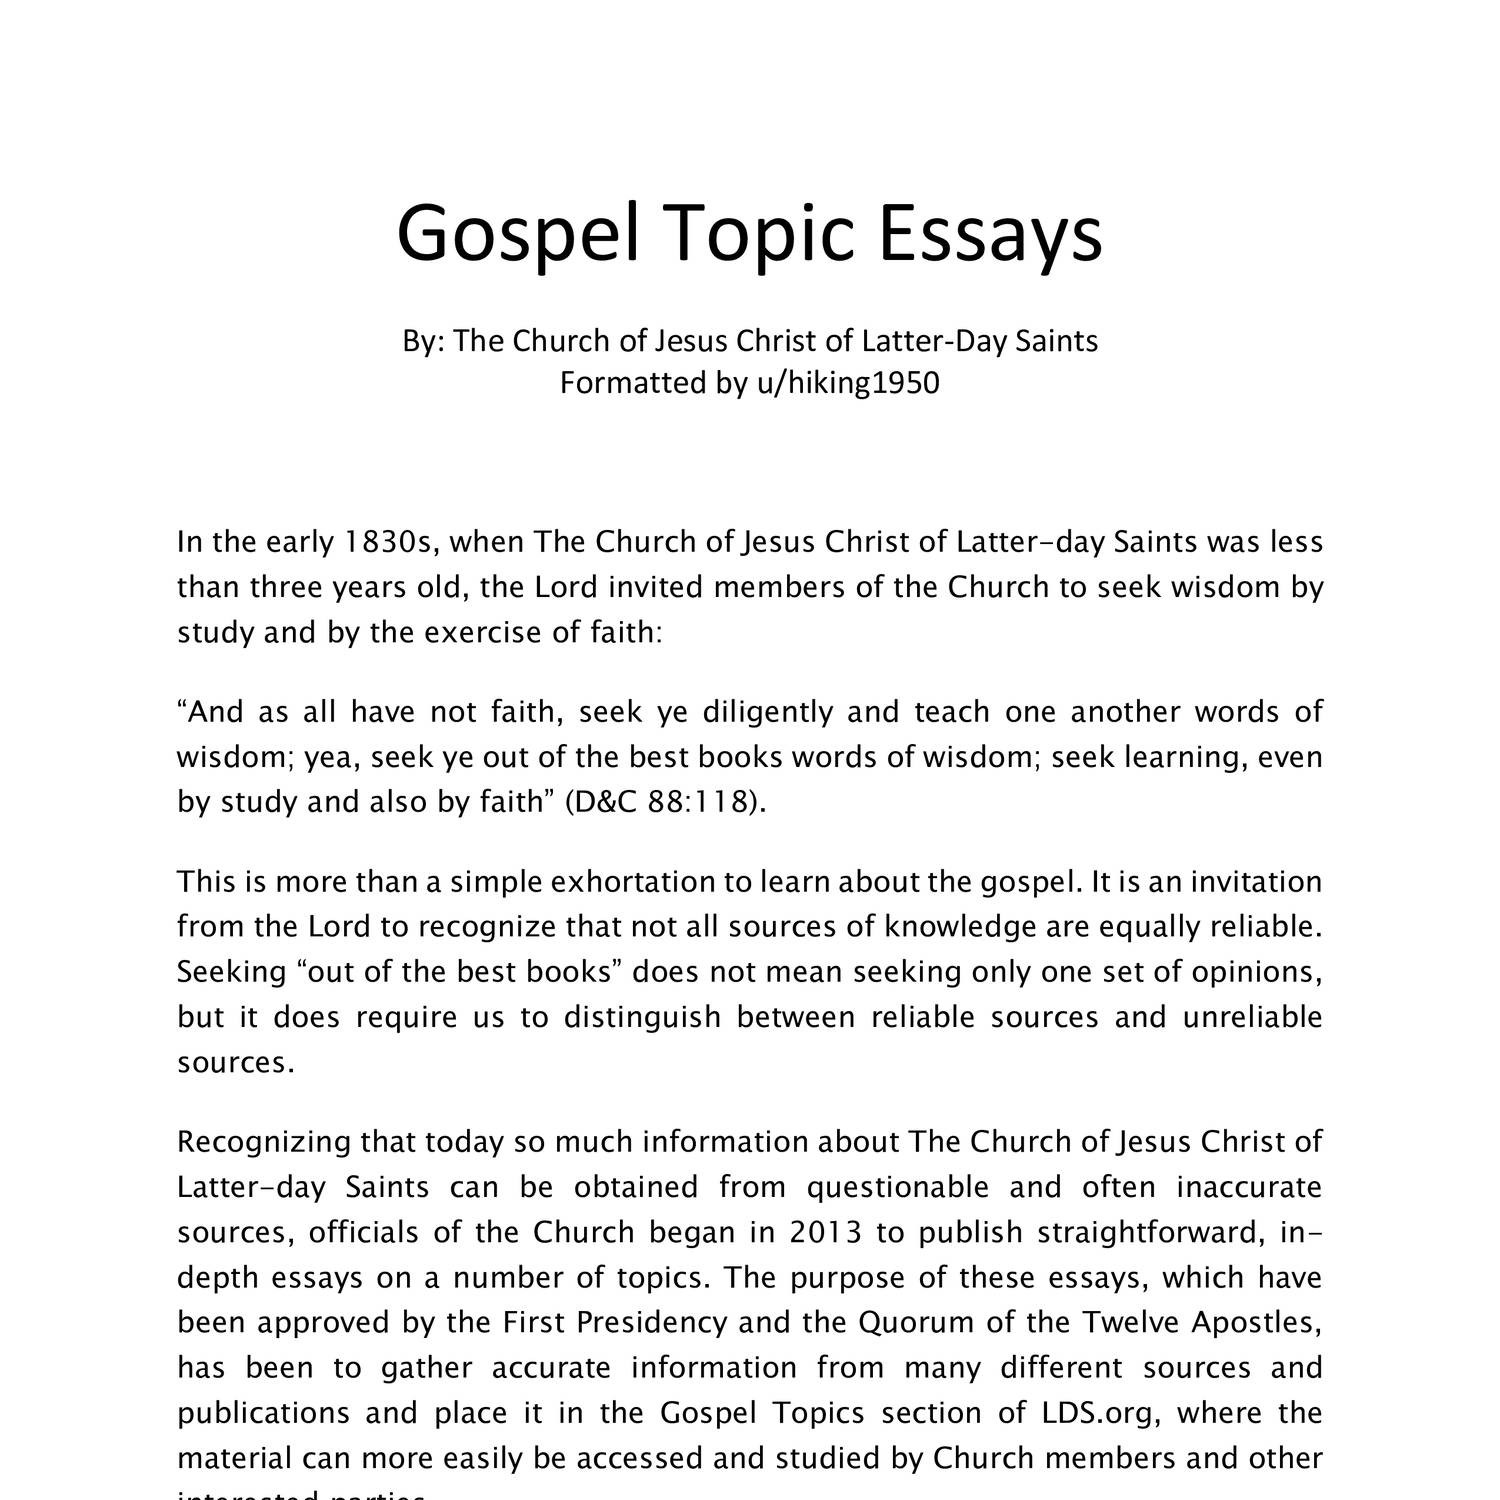 009 Gospel Topics Essays Topic Essay Outstanding Pdf Plural Marriage Becoming Like God Full